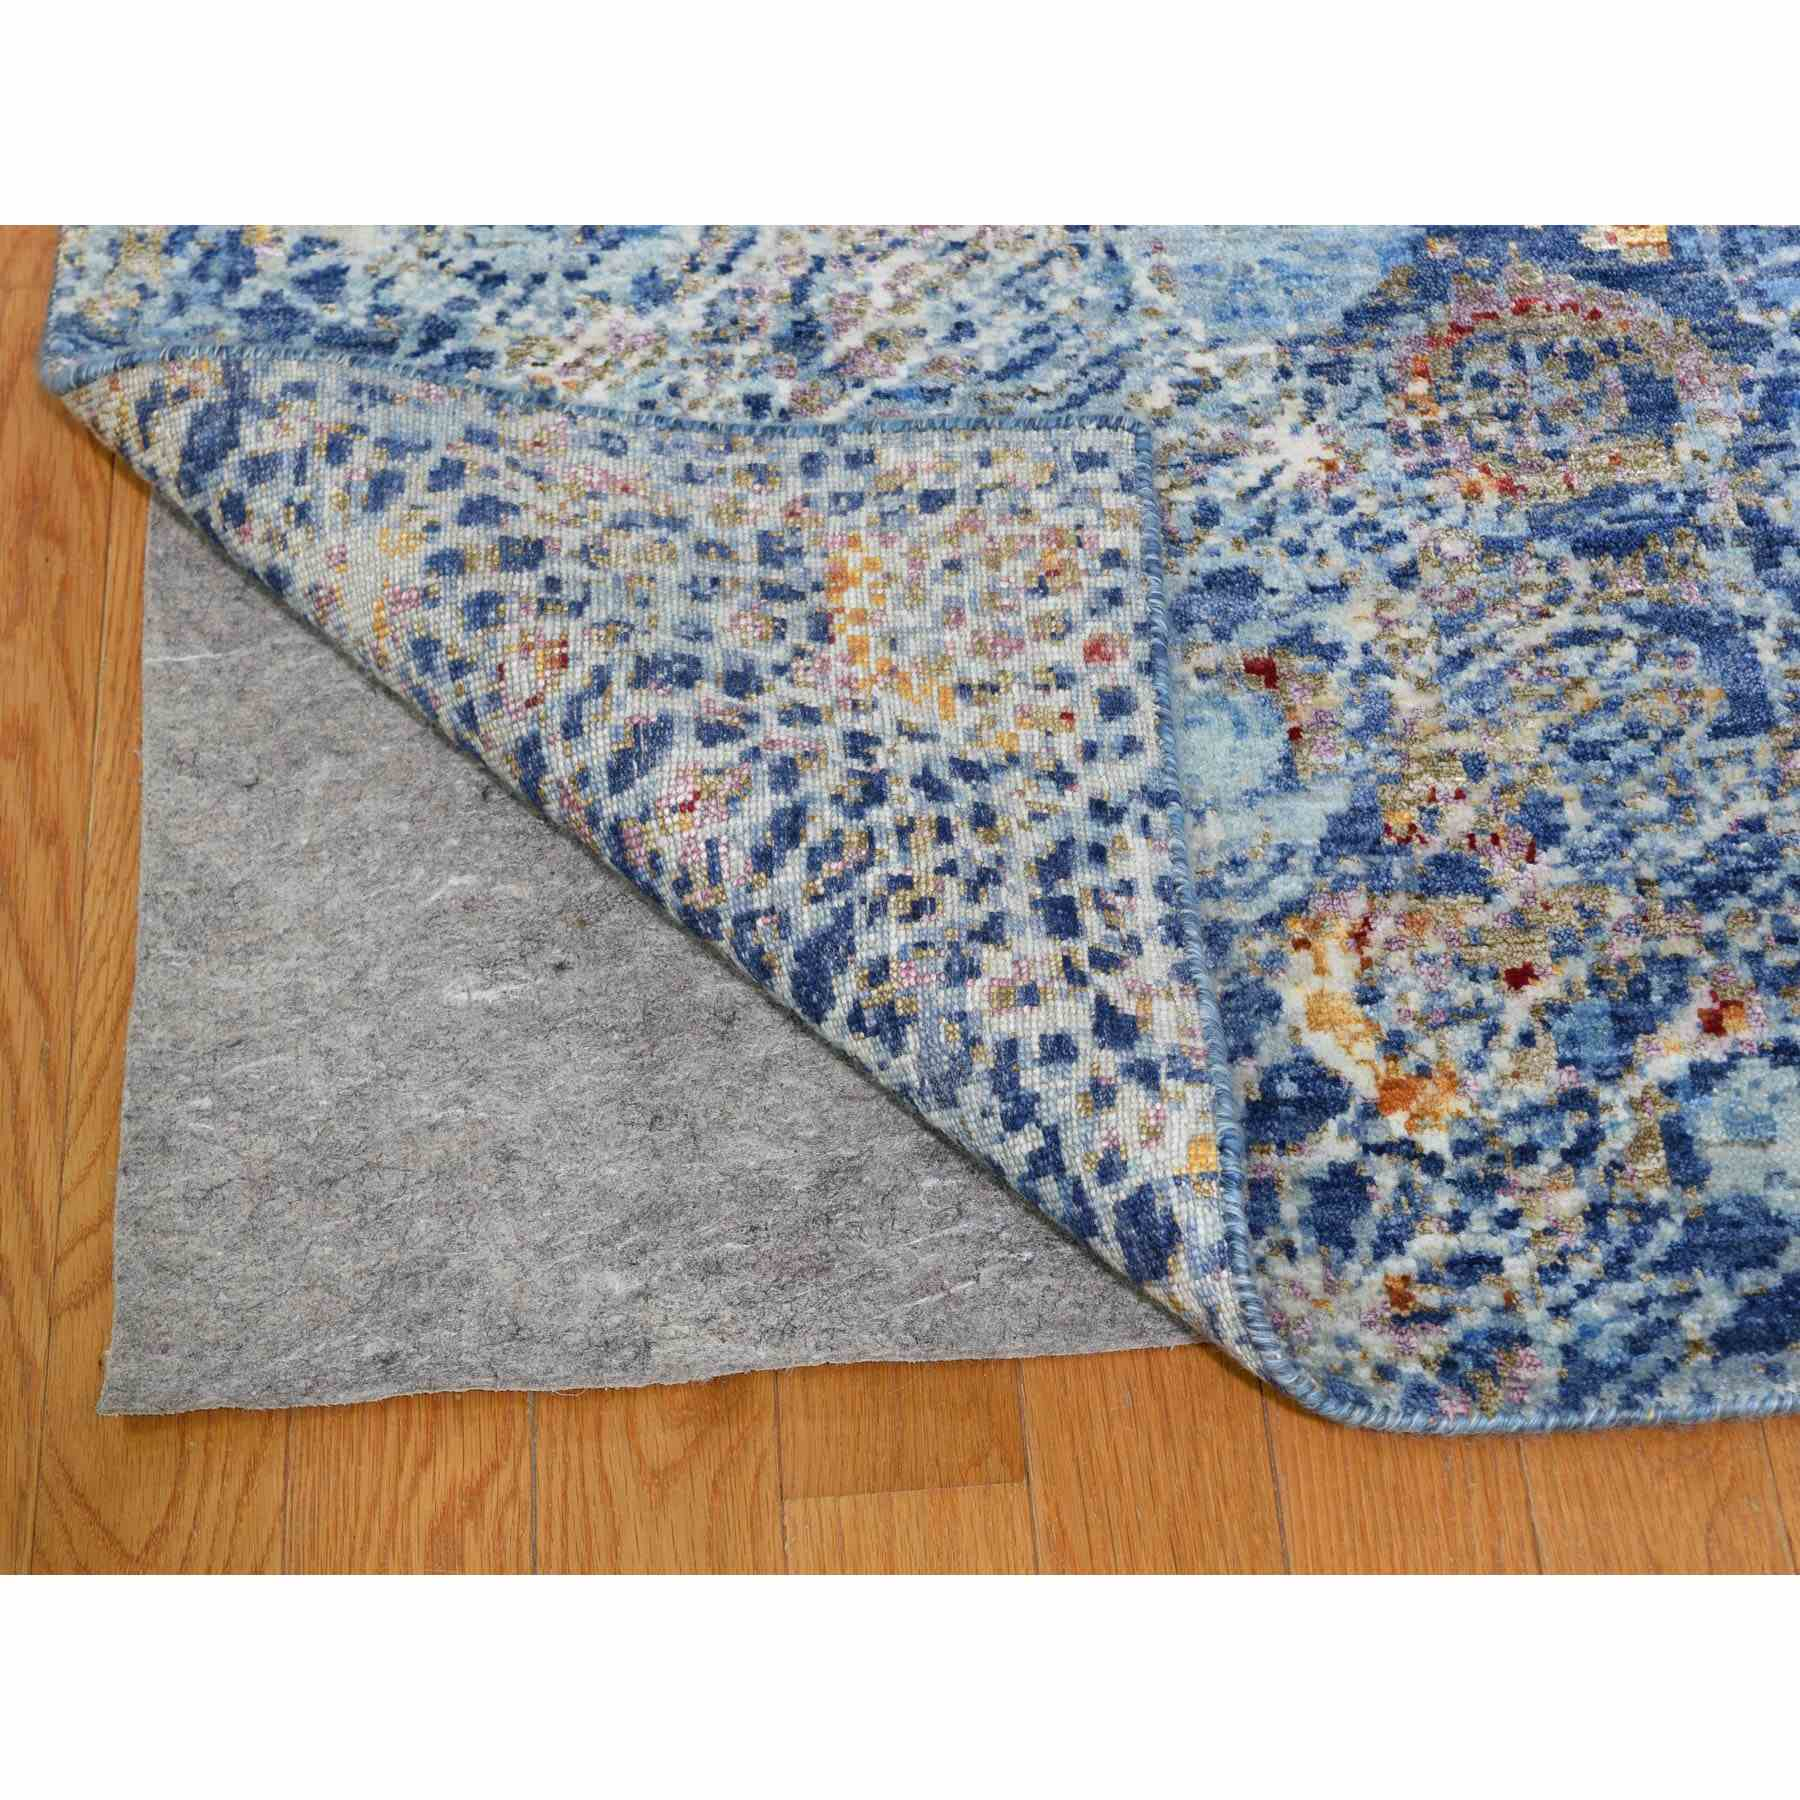 Modern-and-Contemporary-Hand-Knotted-Rug-239565